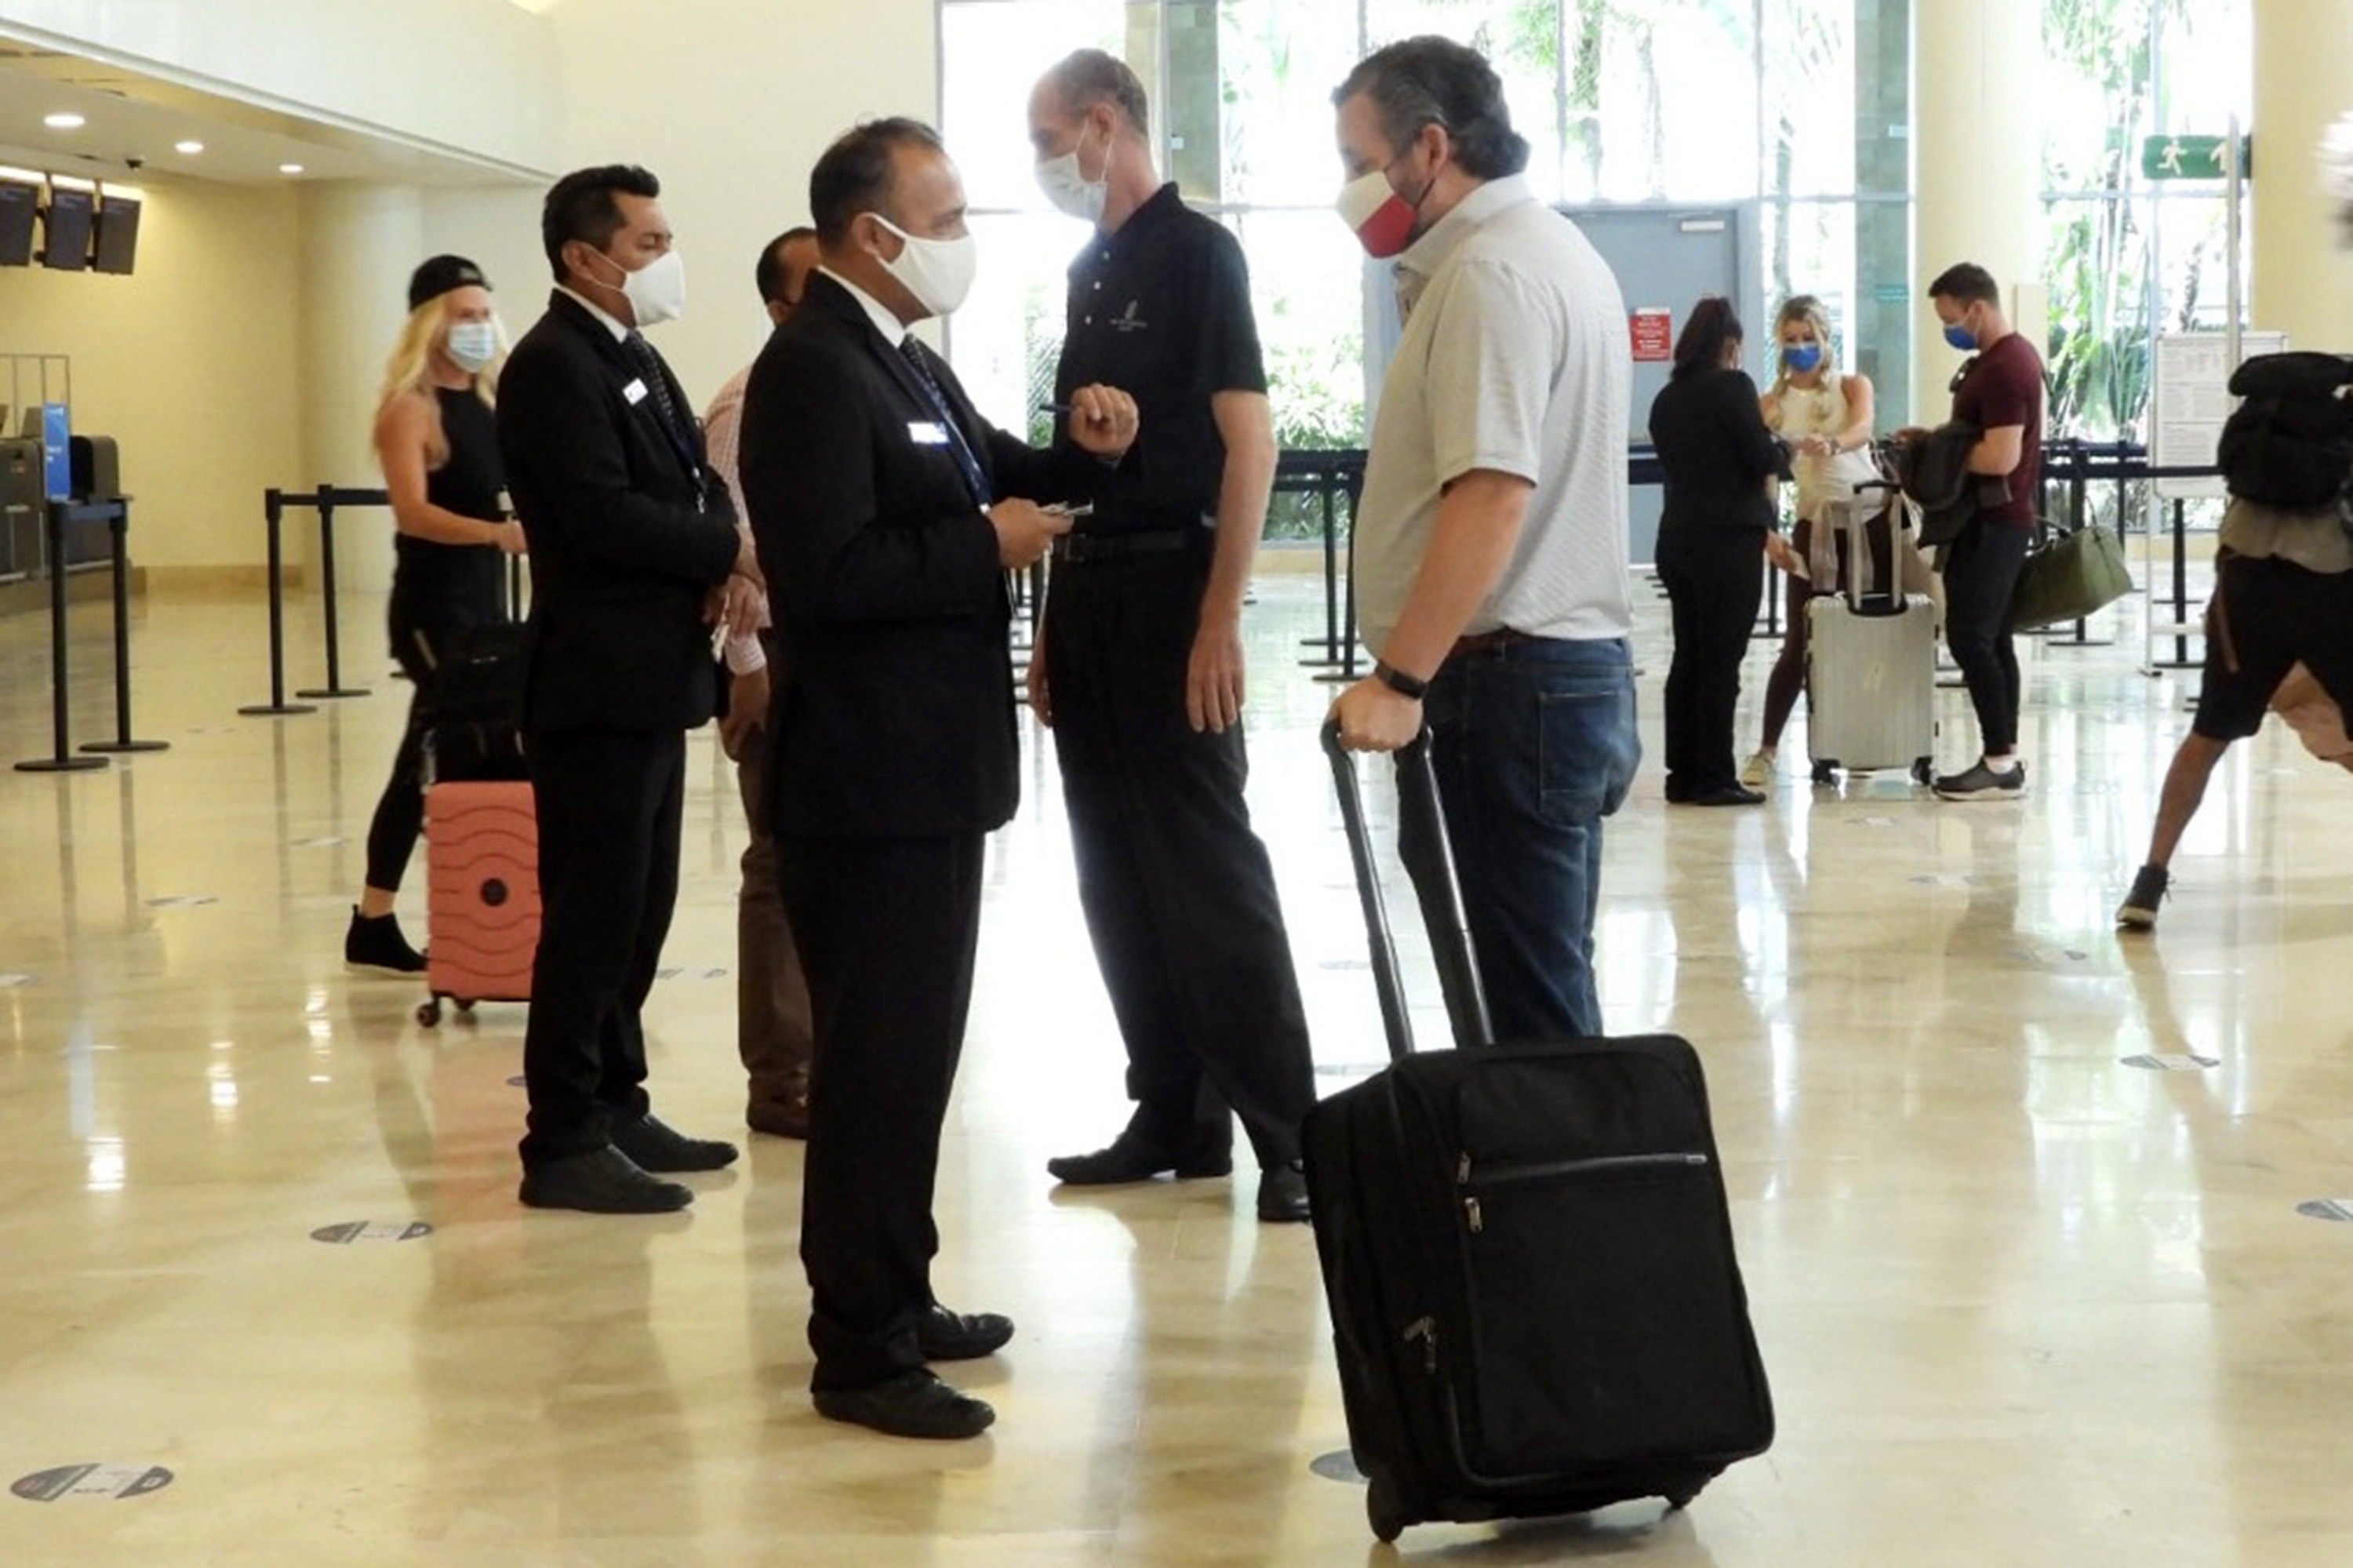 Ted Cruz talks to airport staff while wheeling his luggage